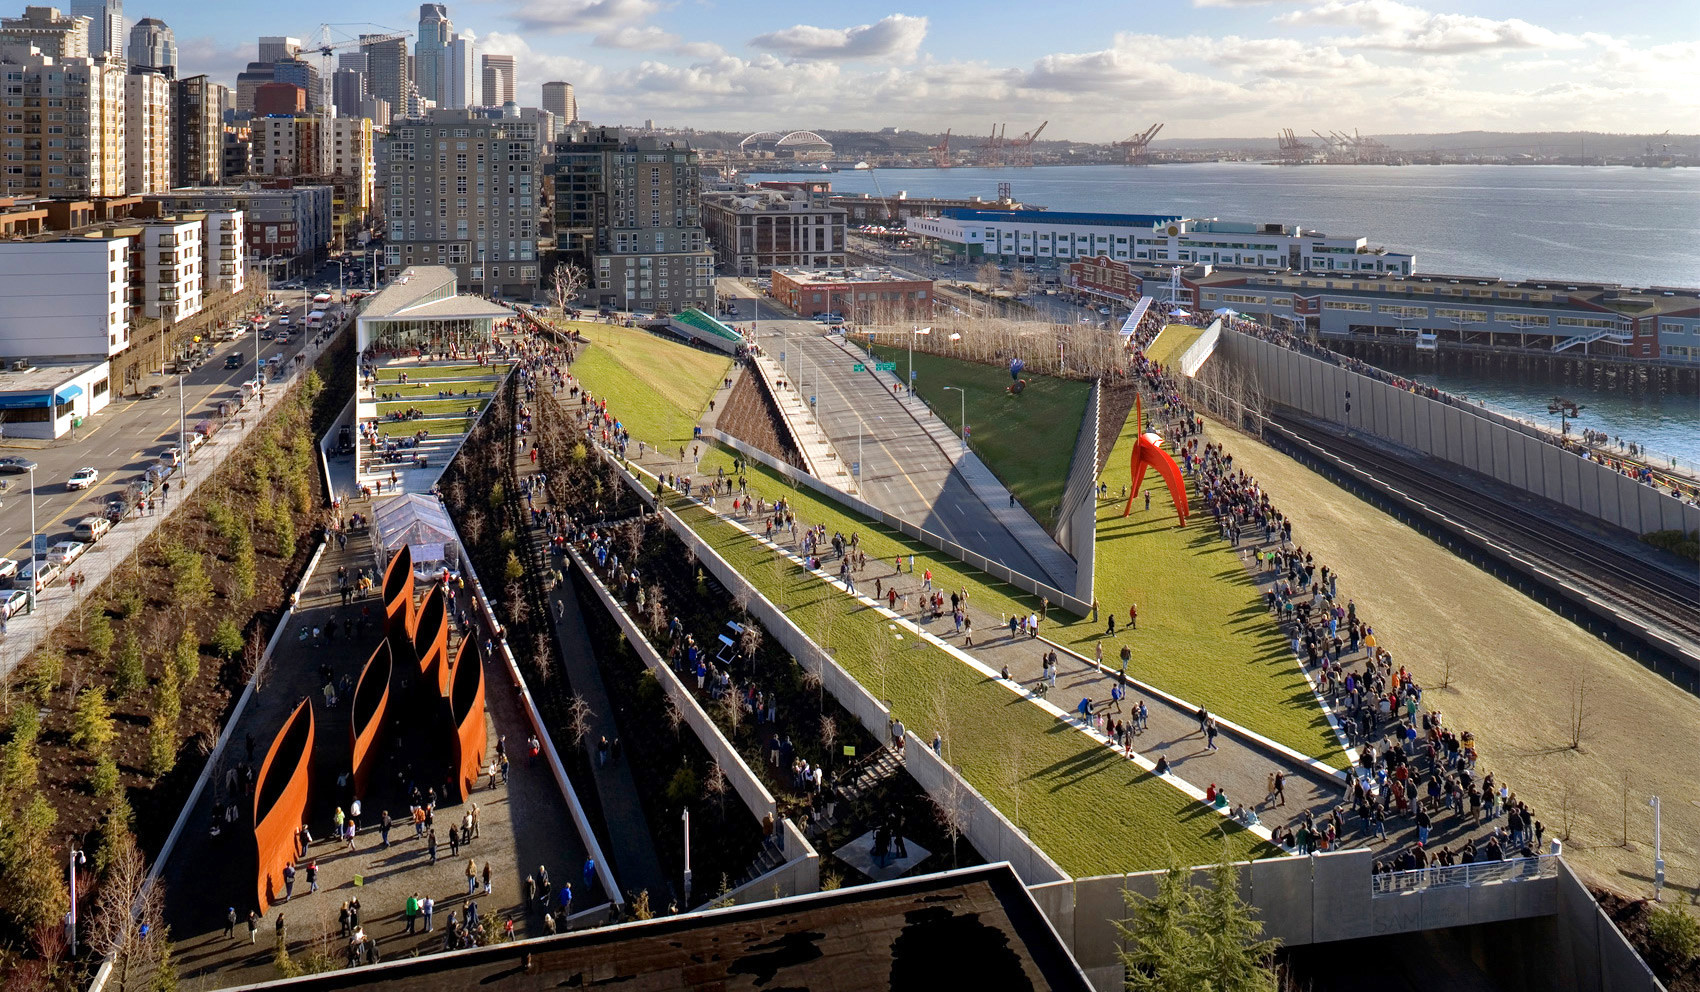 Urban Edge Symposium, Seattle Art Museum: Olympic Sculpture Park / Courtesy of Weiss/Manfredi